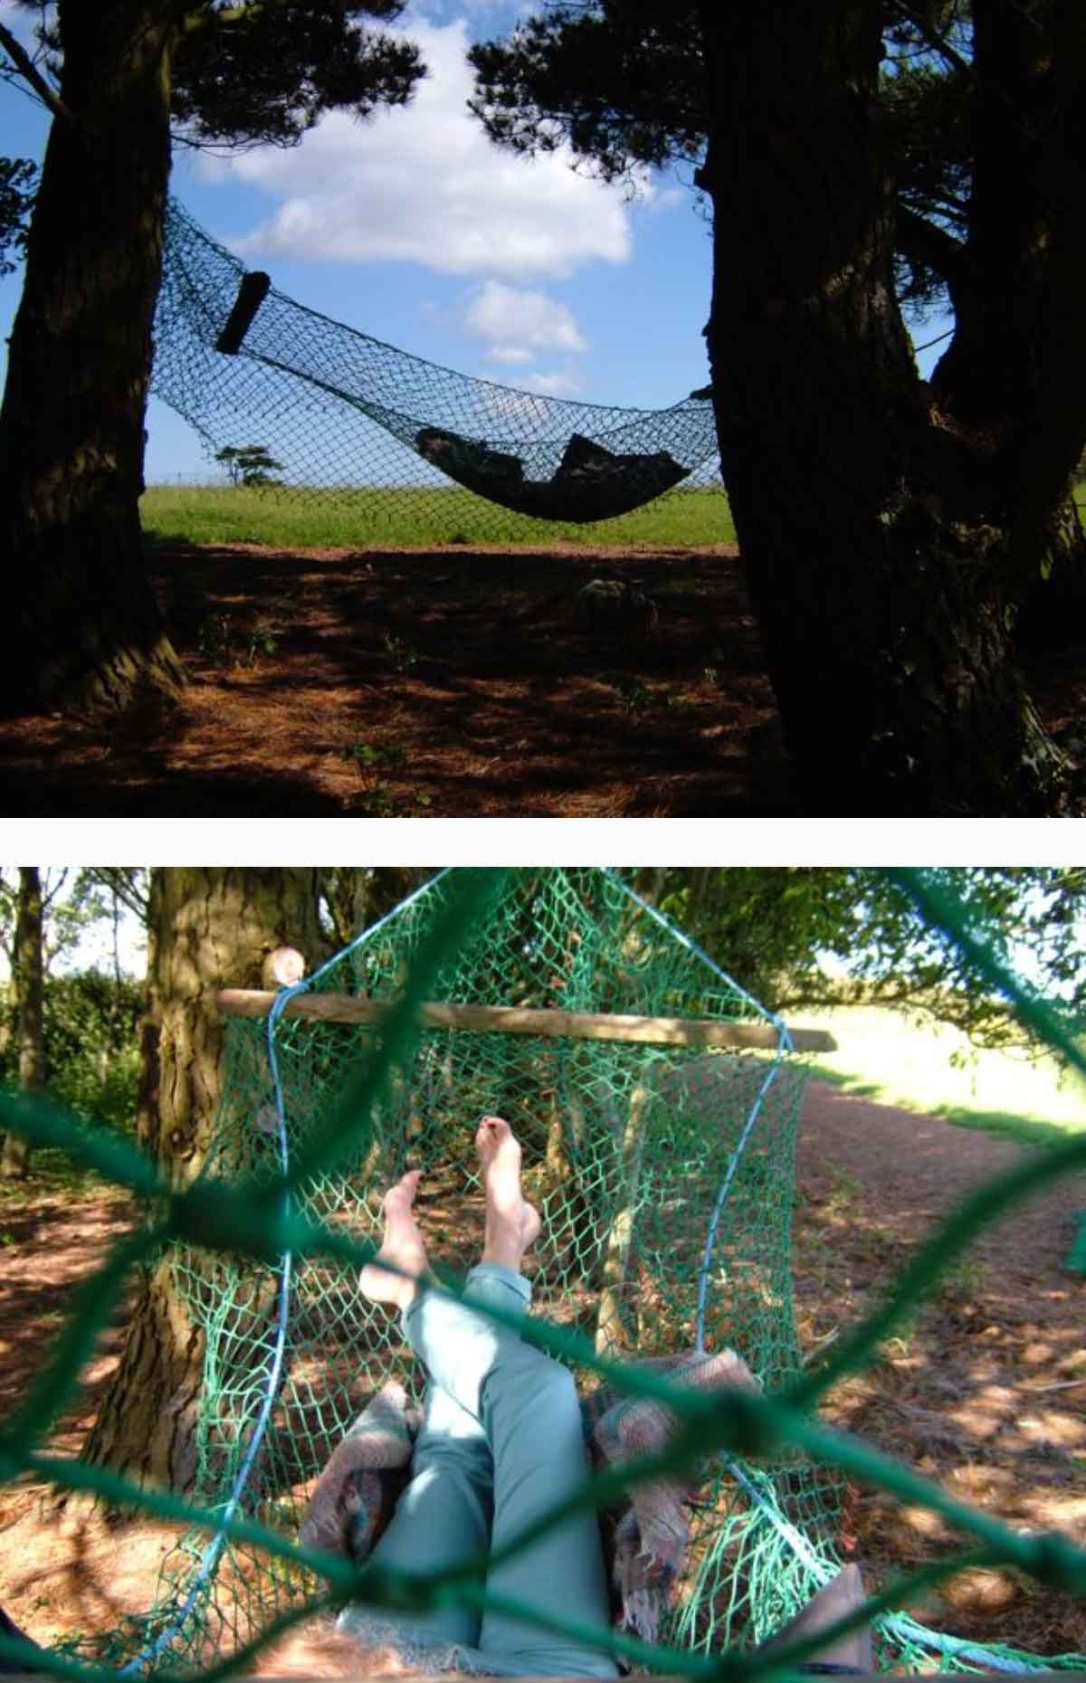 the up cycled fishing net hammock in the woods at barefoot glamping Cornwall